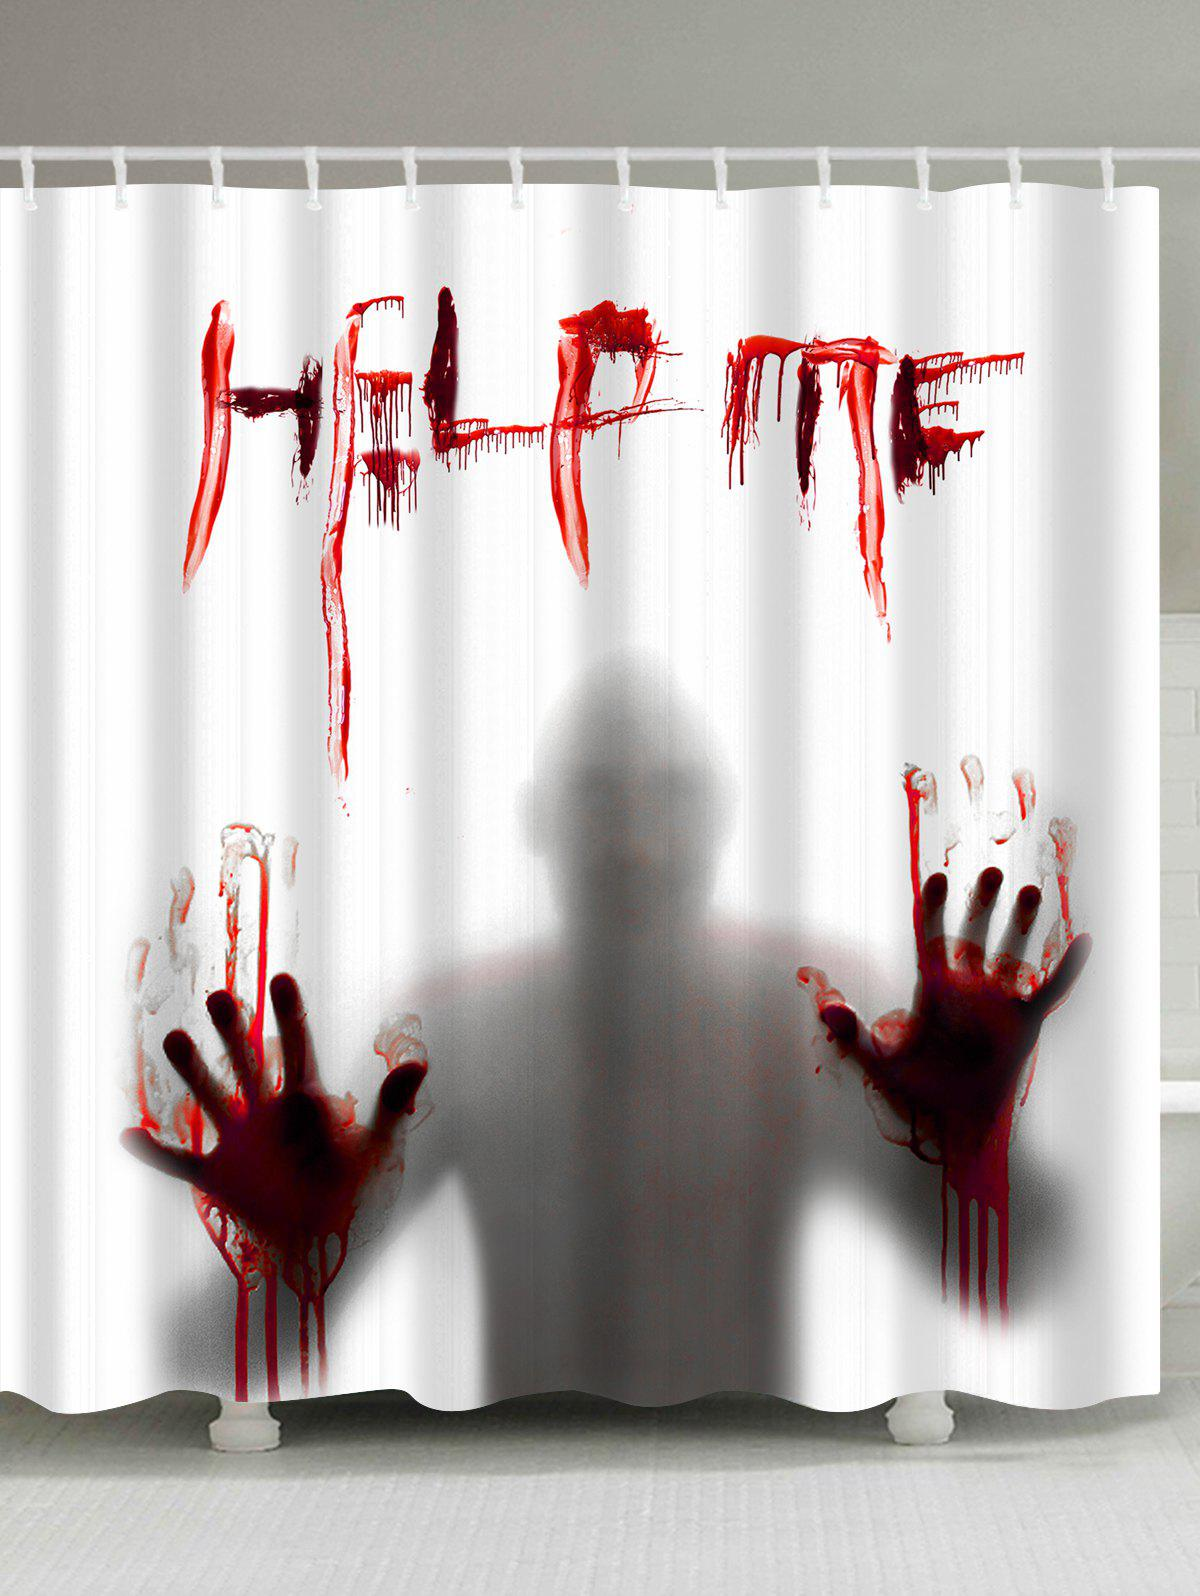 2019 Gothic Help Me Shadow Shower Curtain For Halloween Rosegal Com